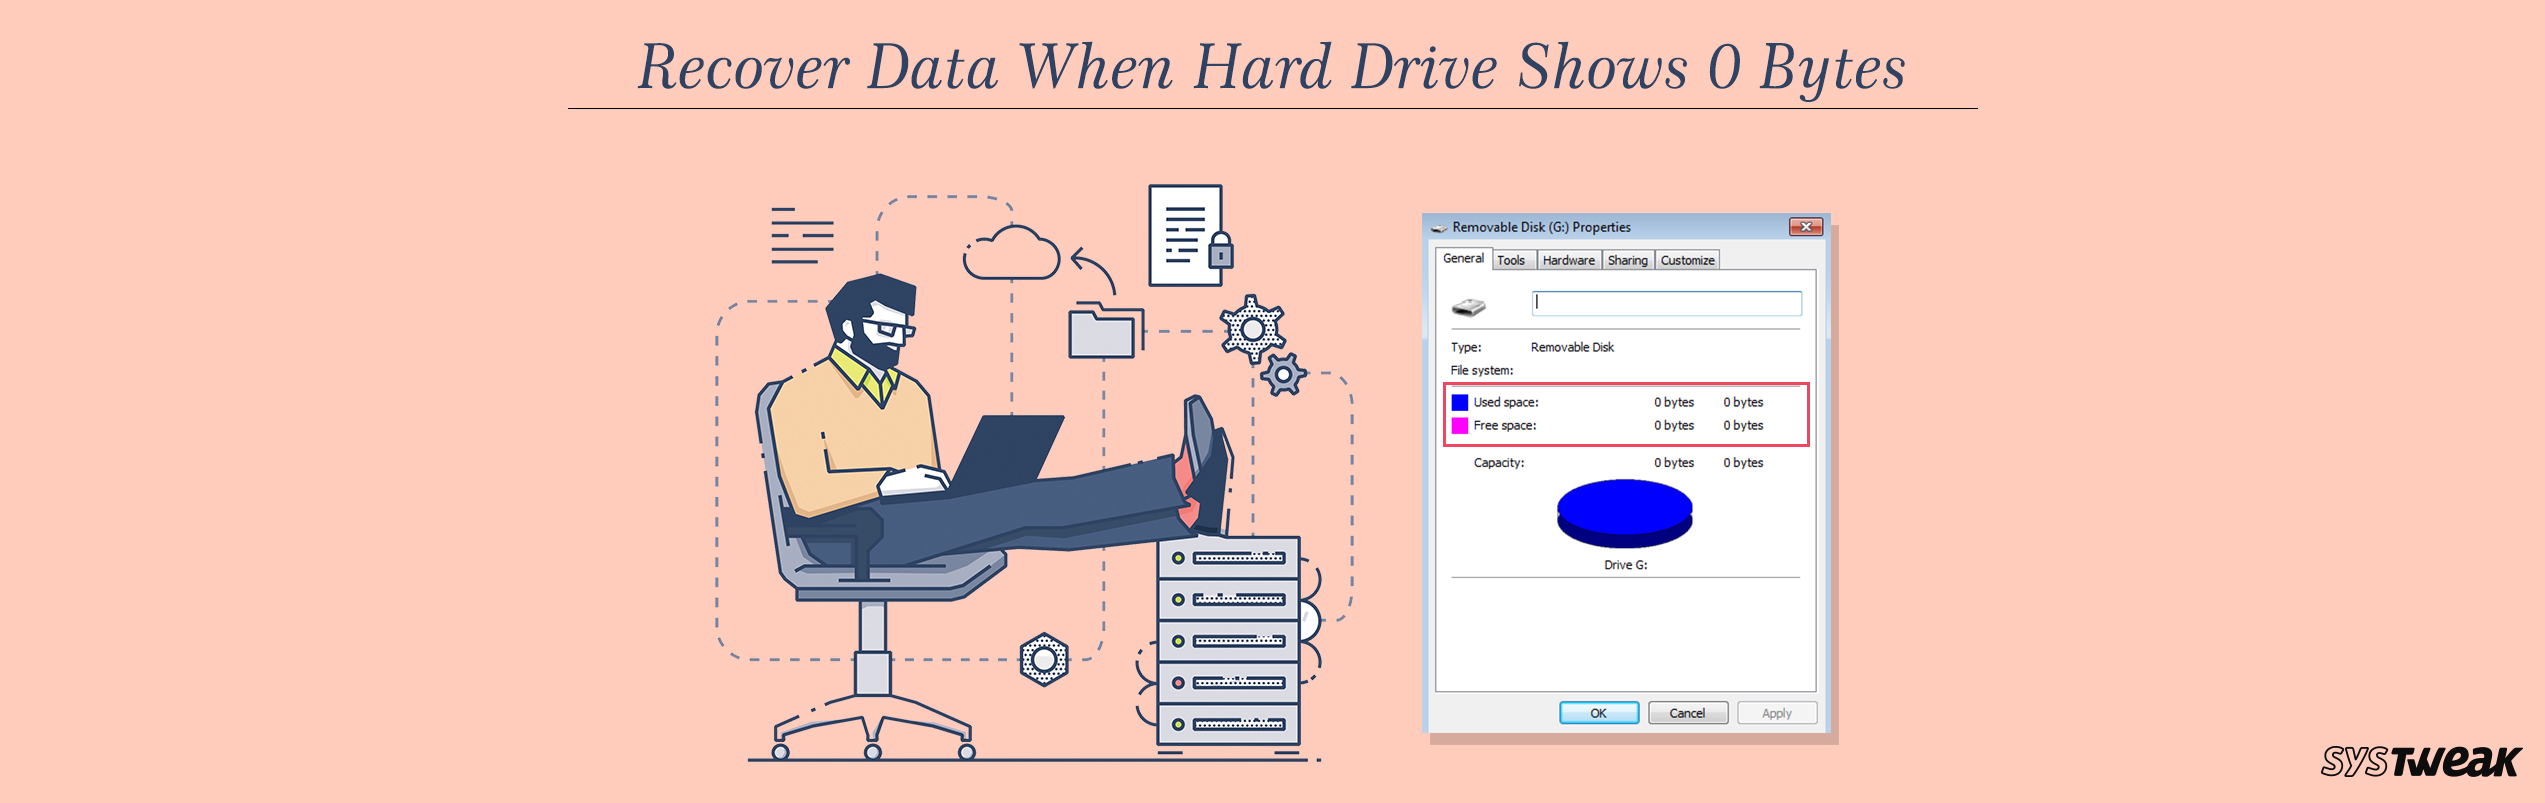 Recover Your Data When Hard Drive Shows 0 Bytes